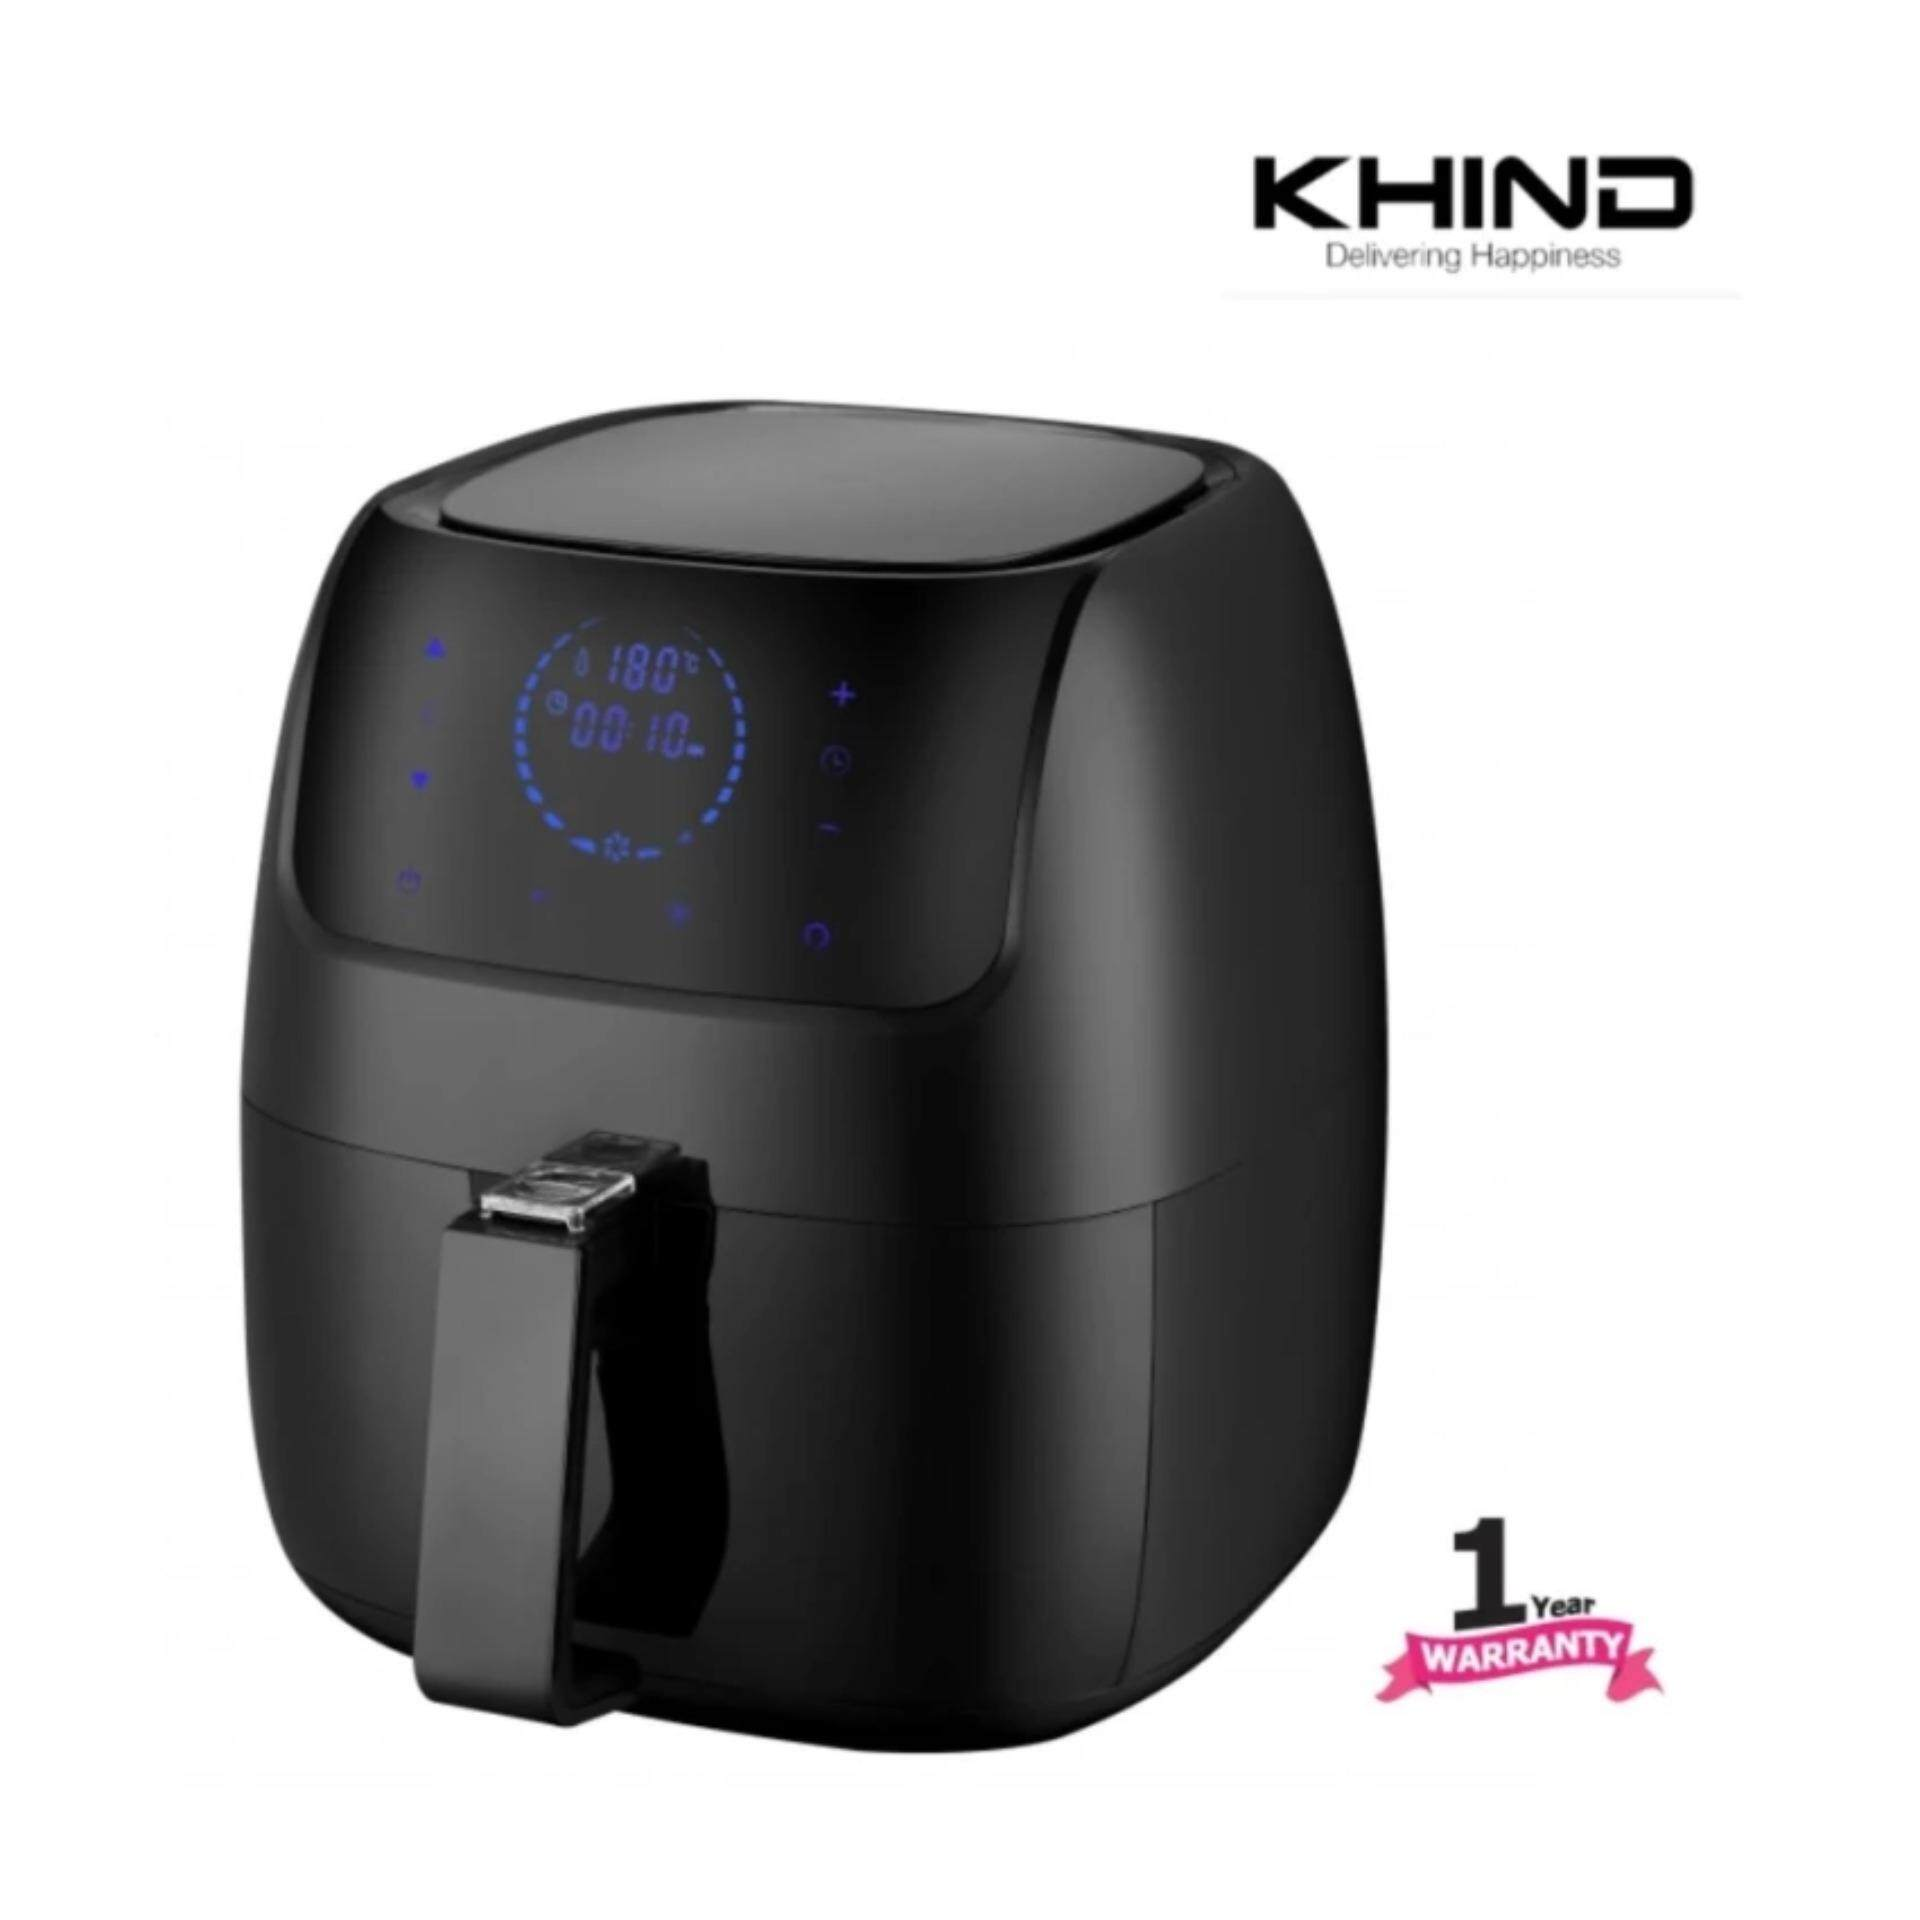 Khind Air Fryer Arf3000 With Digital Display 3l Multi Function 8 Options Latest Model